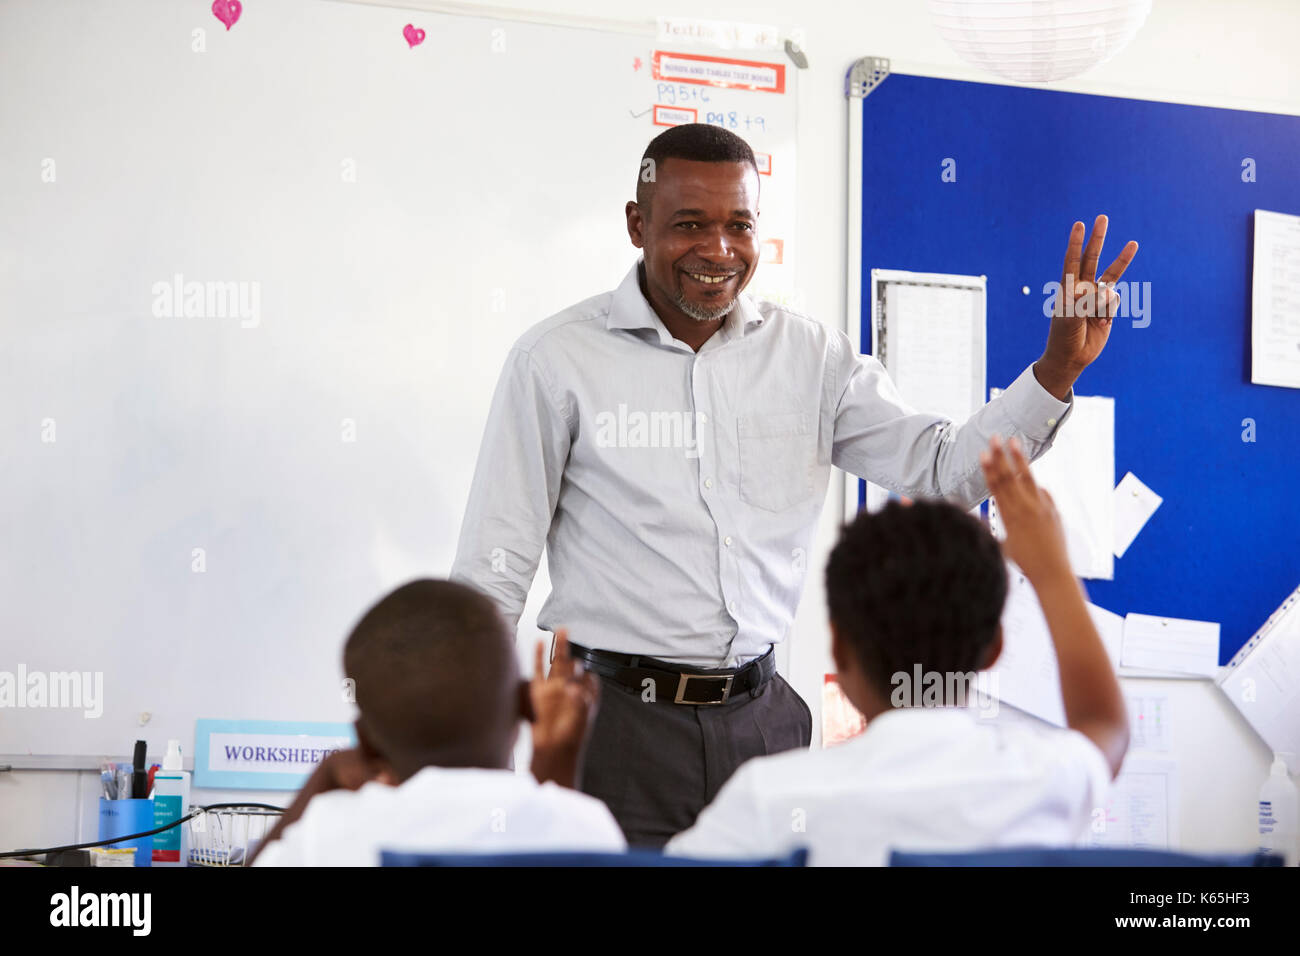 Teacher showing hand in front of an elementary school class - Stock Image